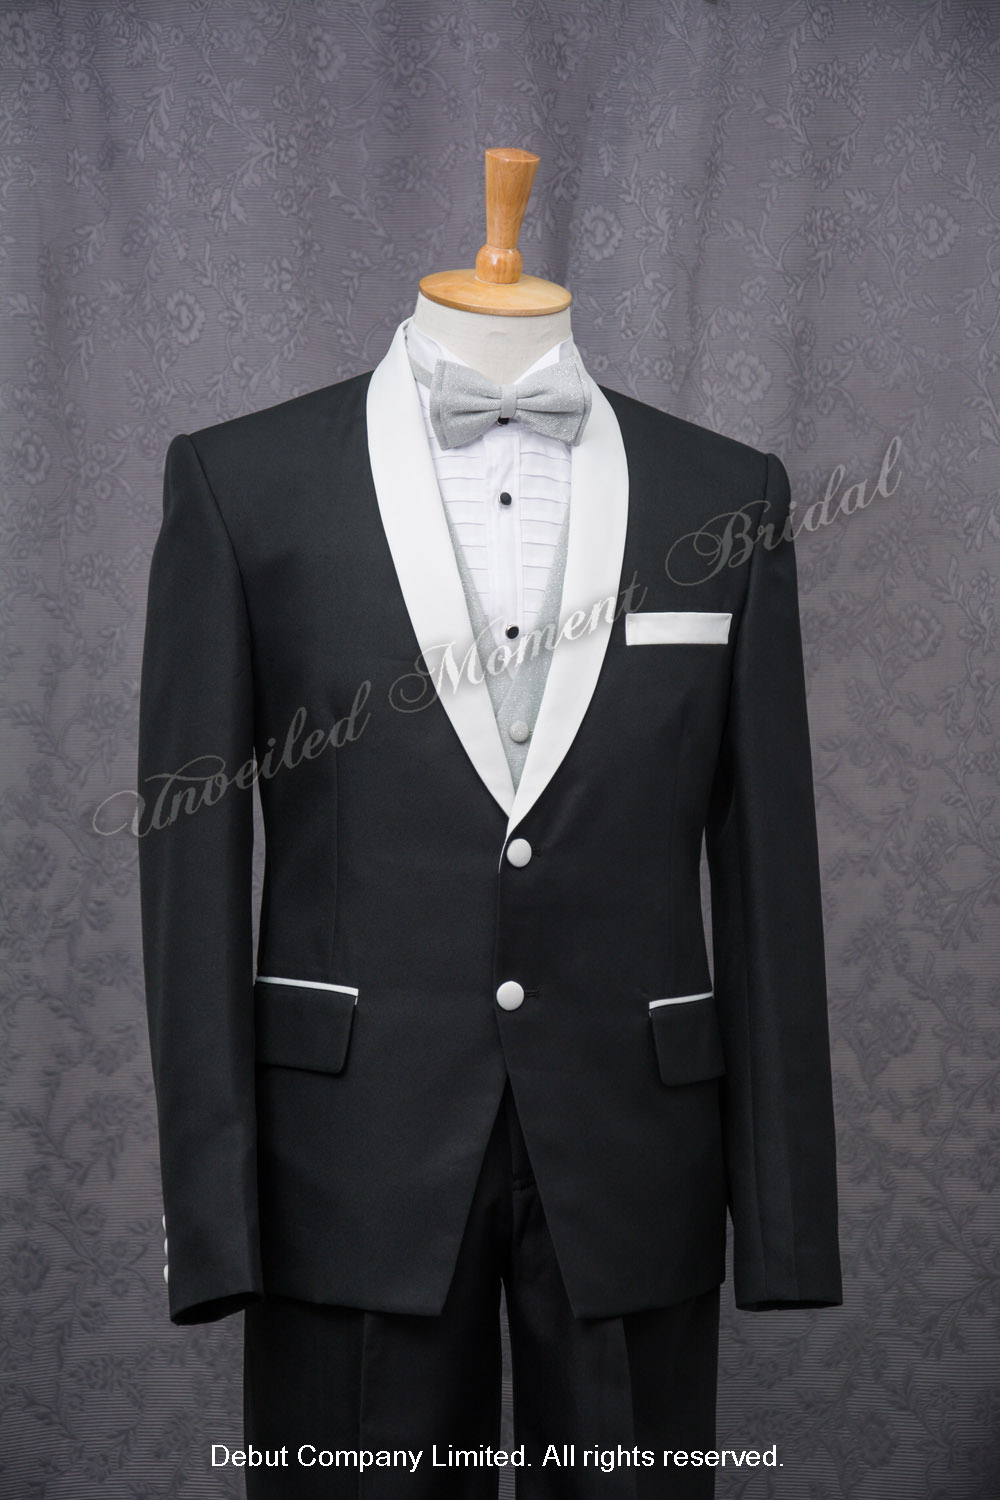 Black suit-style tuxedo with contrasting white shawl collar, pocket welts and shank buttons, matched with silver waistcoat and bow 銀色領結, 銀色馬甲, 白色披肩領鈕扣, 修身西裝款黑色新郎禮服